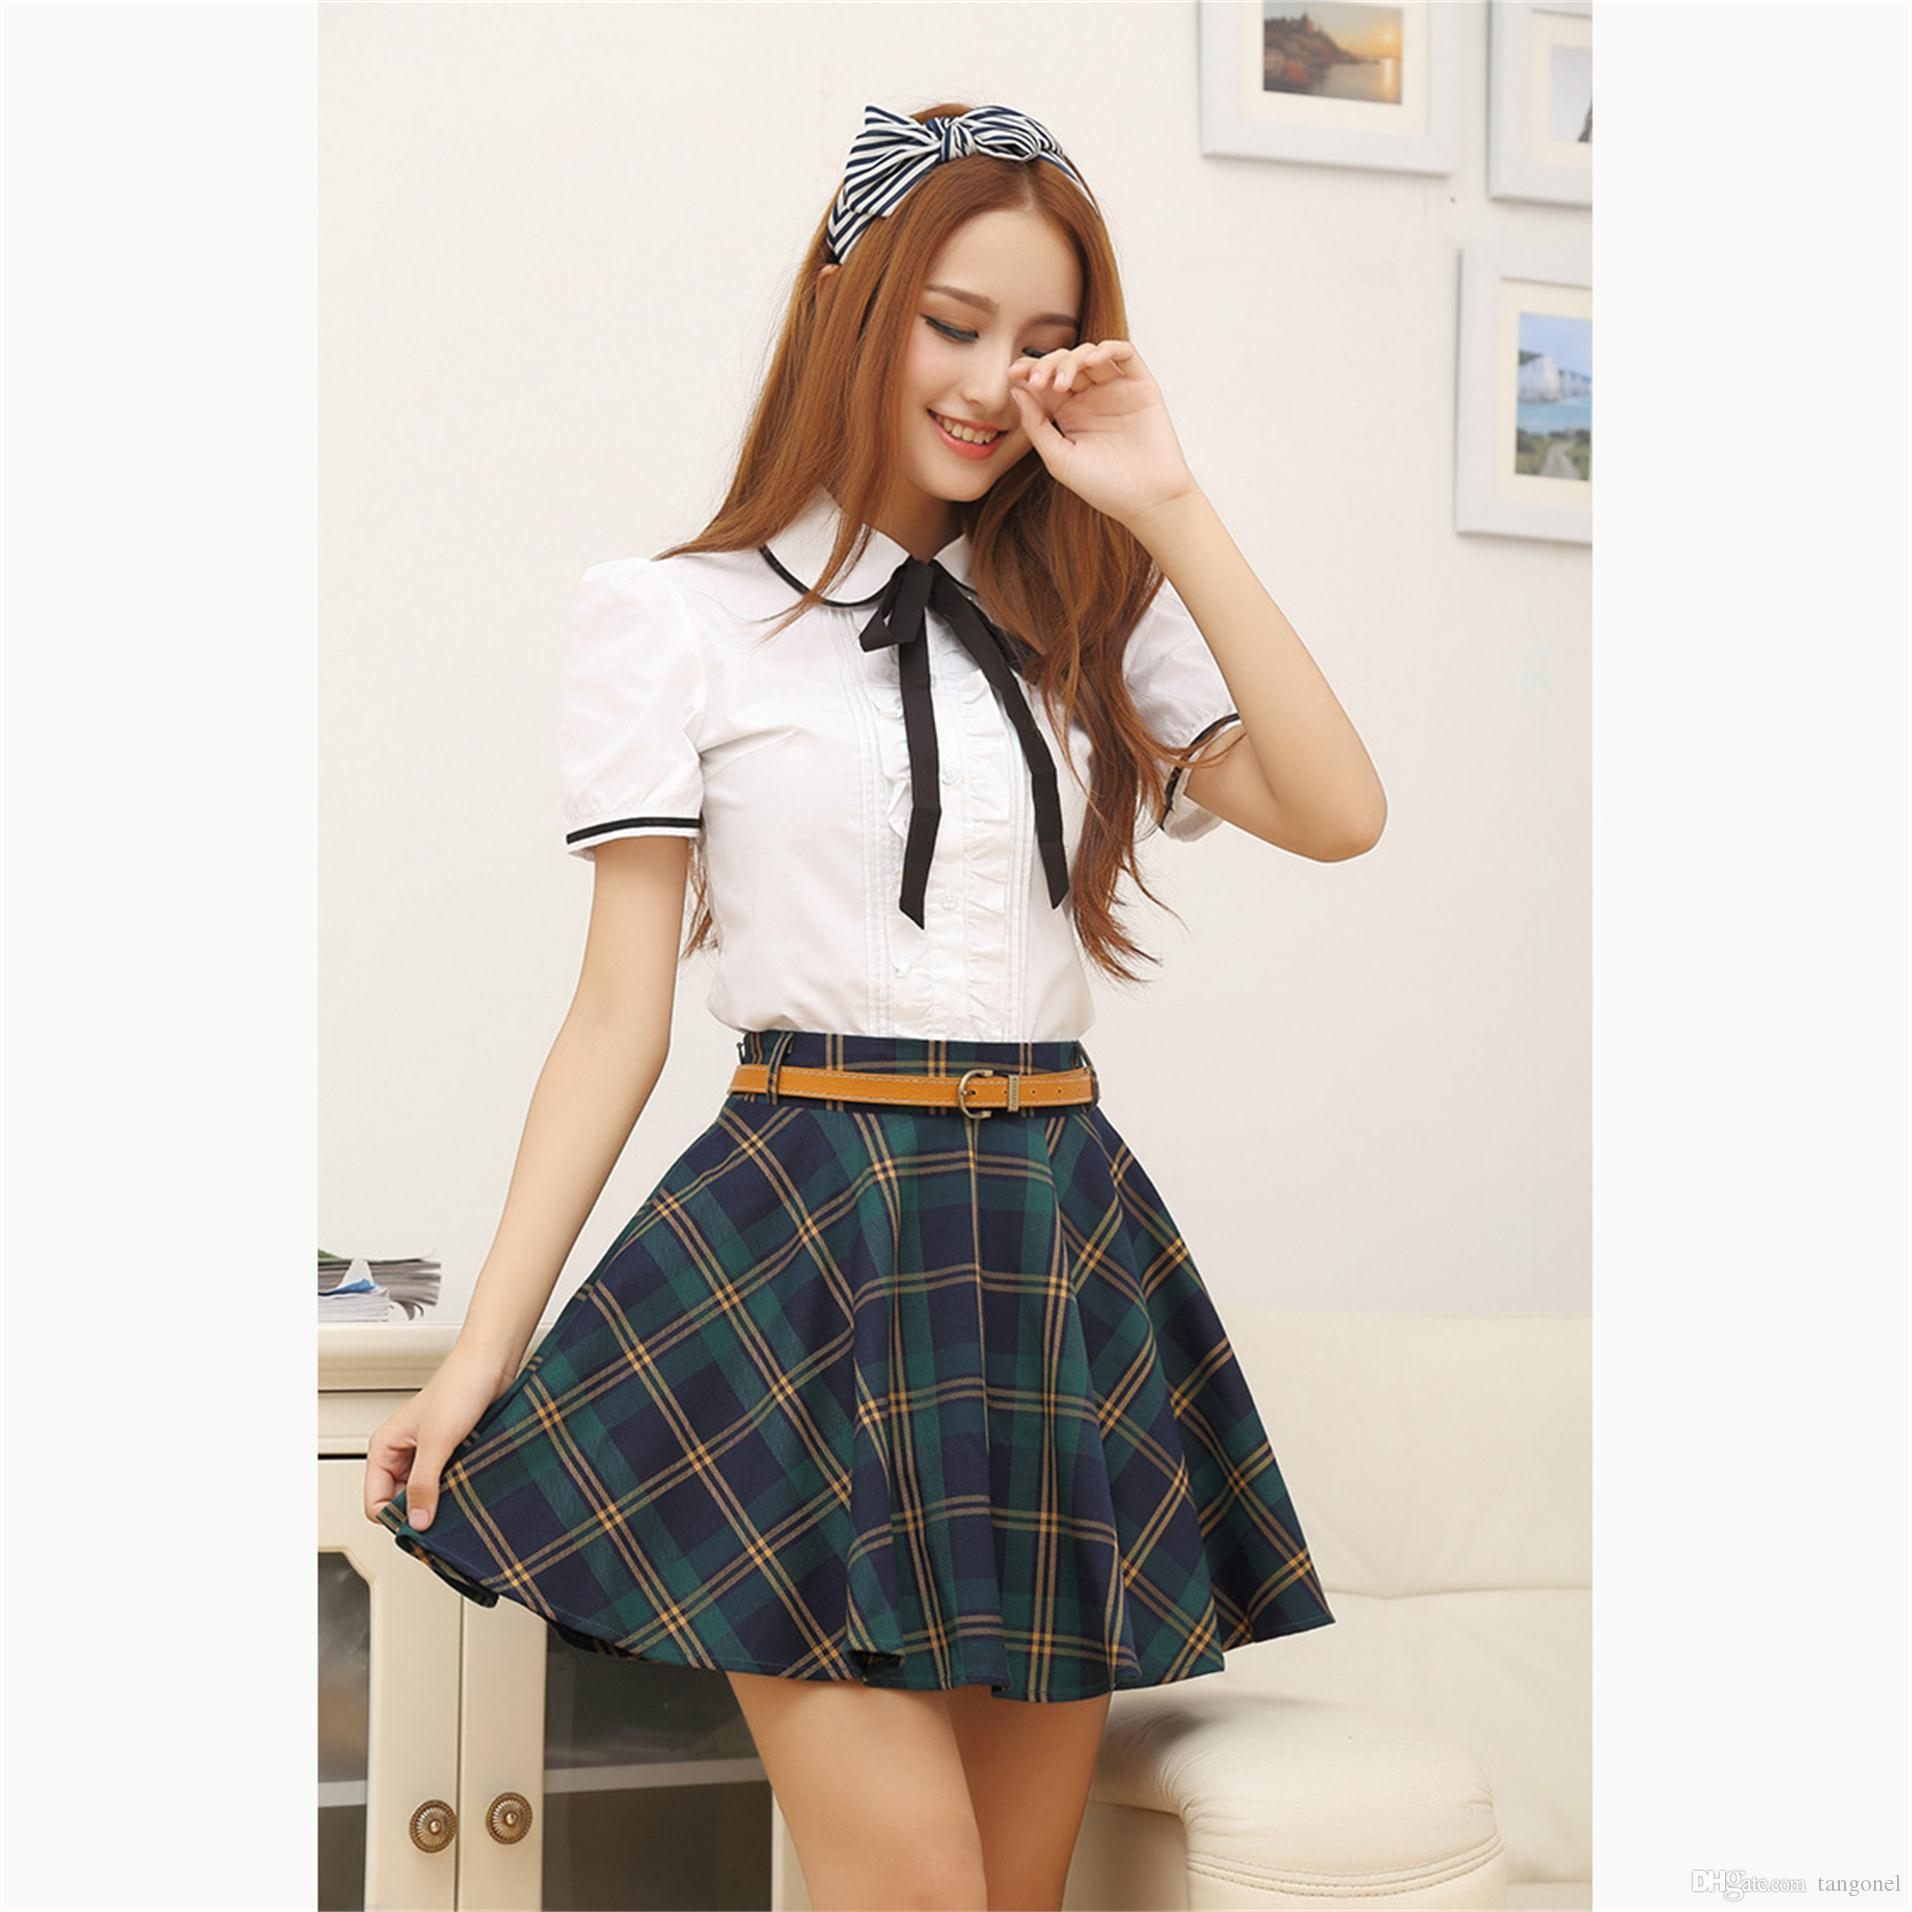 Find great deals on eBay for white uniform skirt. Shop with confidence.